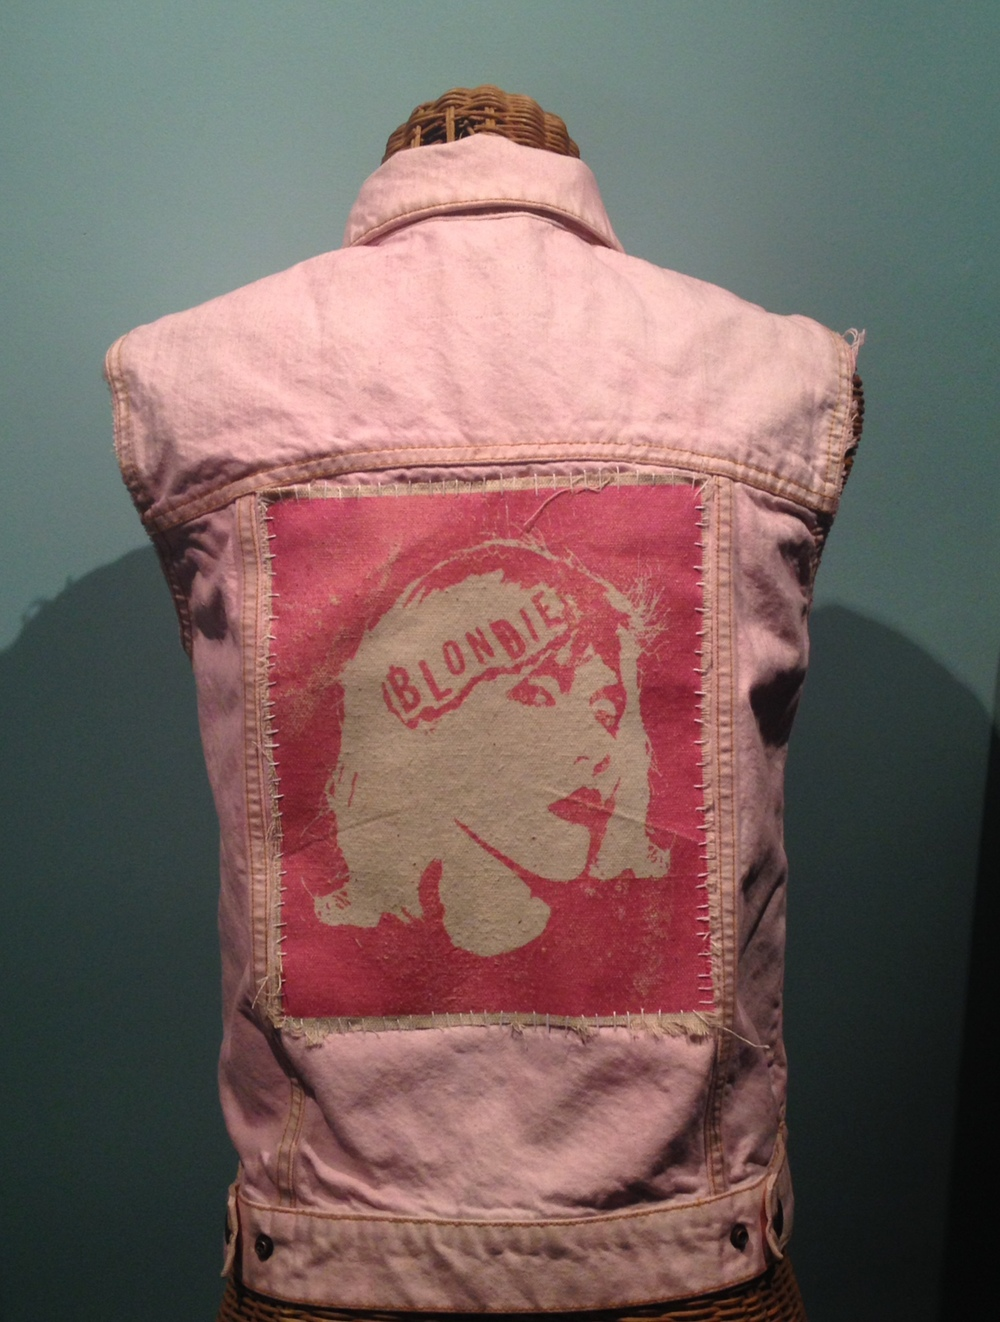 Dylan Garrett Smith Blondie Decoden punk vest sewn